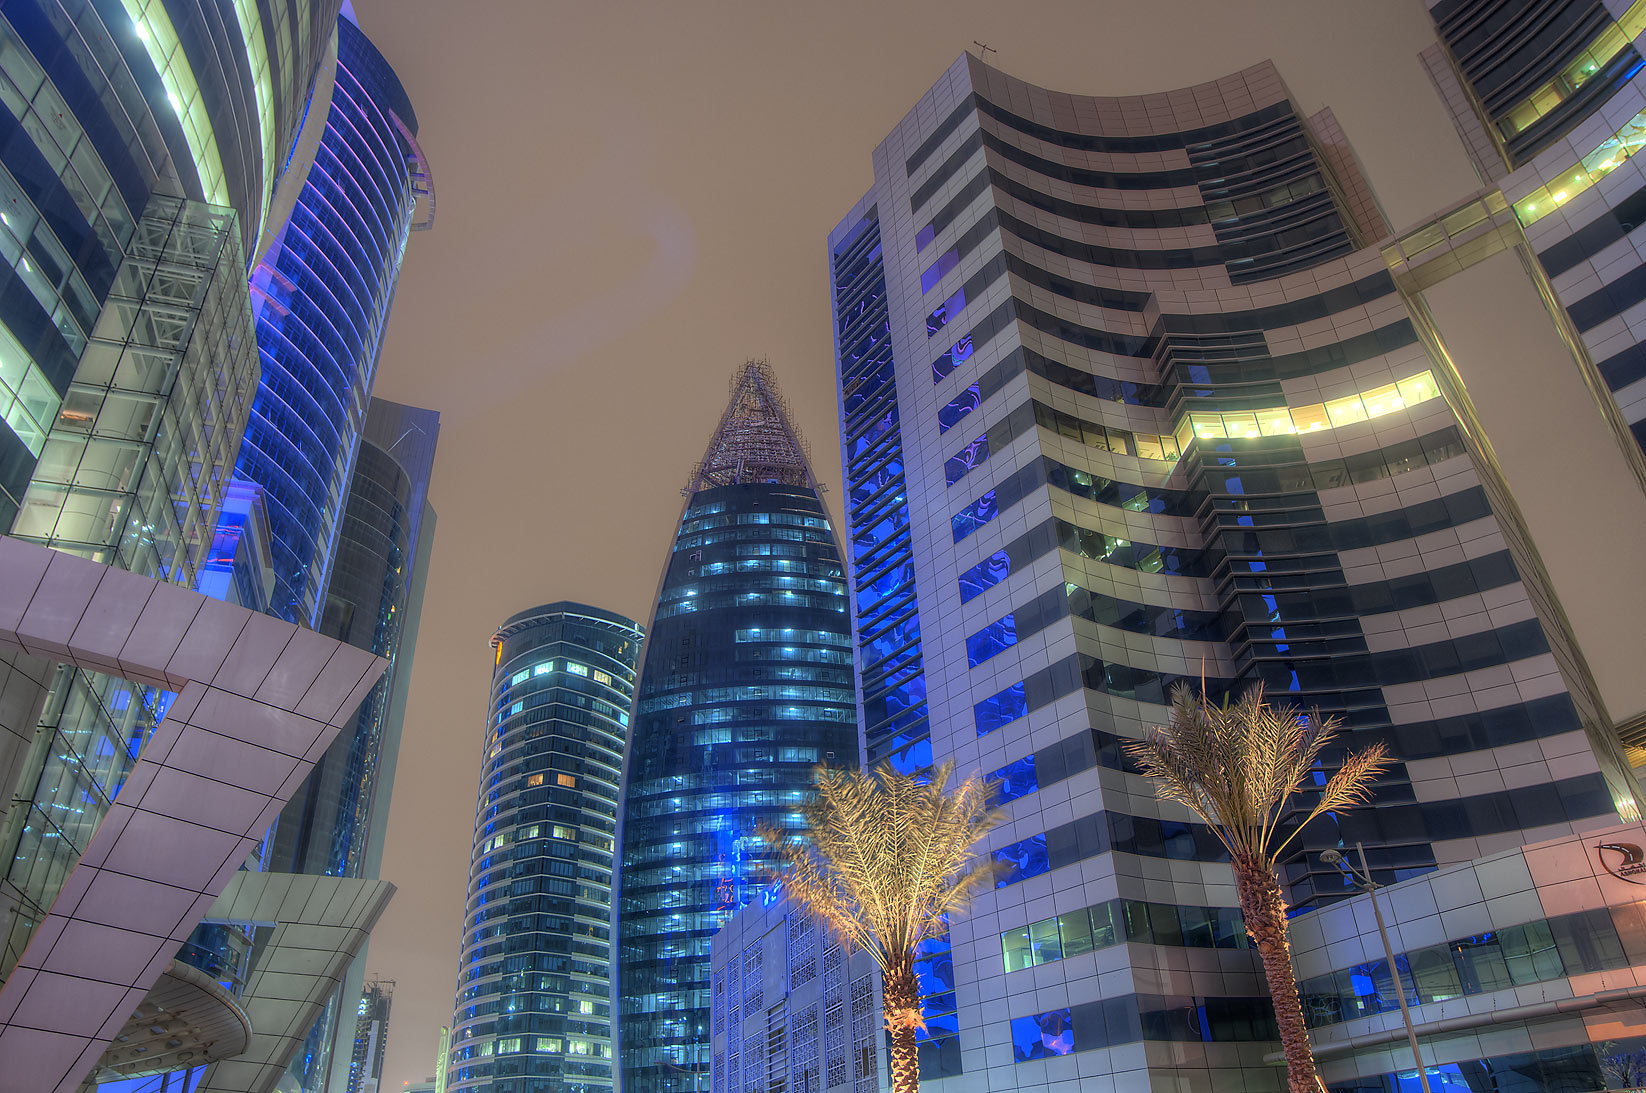 Doha Bank, Woqod Tower and Public Works Authority...from Sheraton Roundabout. Doha, Qatar